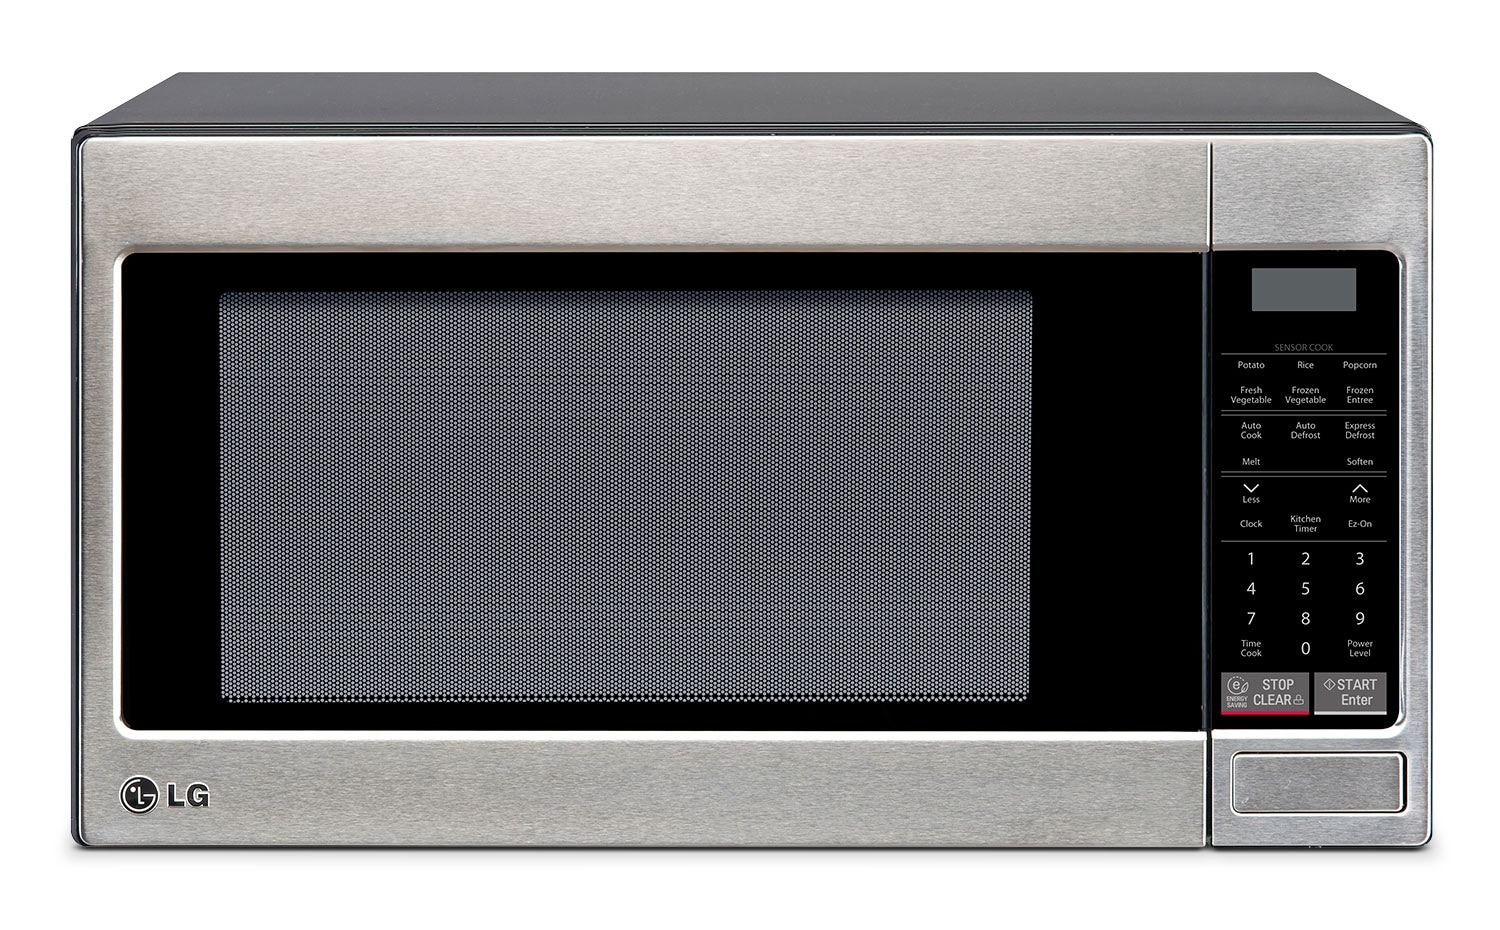 LG Appliances Stainless Steel Microwave (2.0 Cu. Ft.) - LMC2055ST